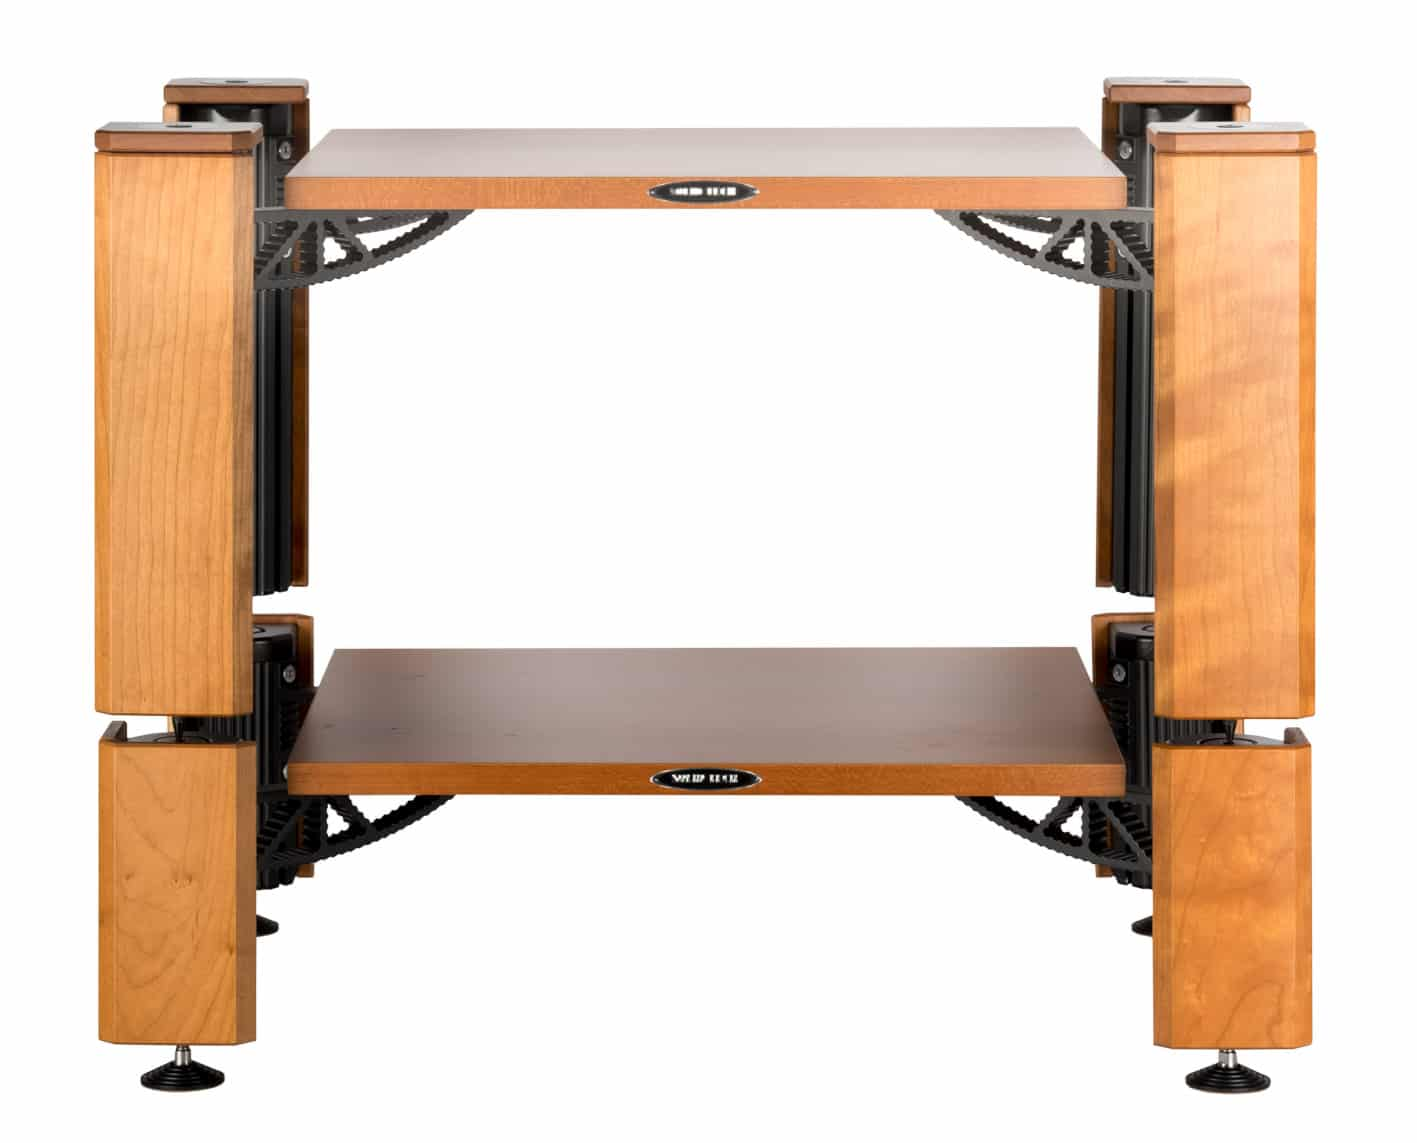 Hybrid Wood 2 shelf-kit Image